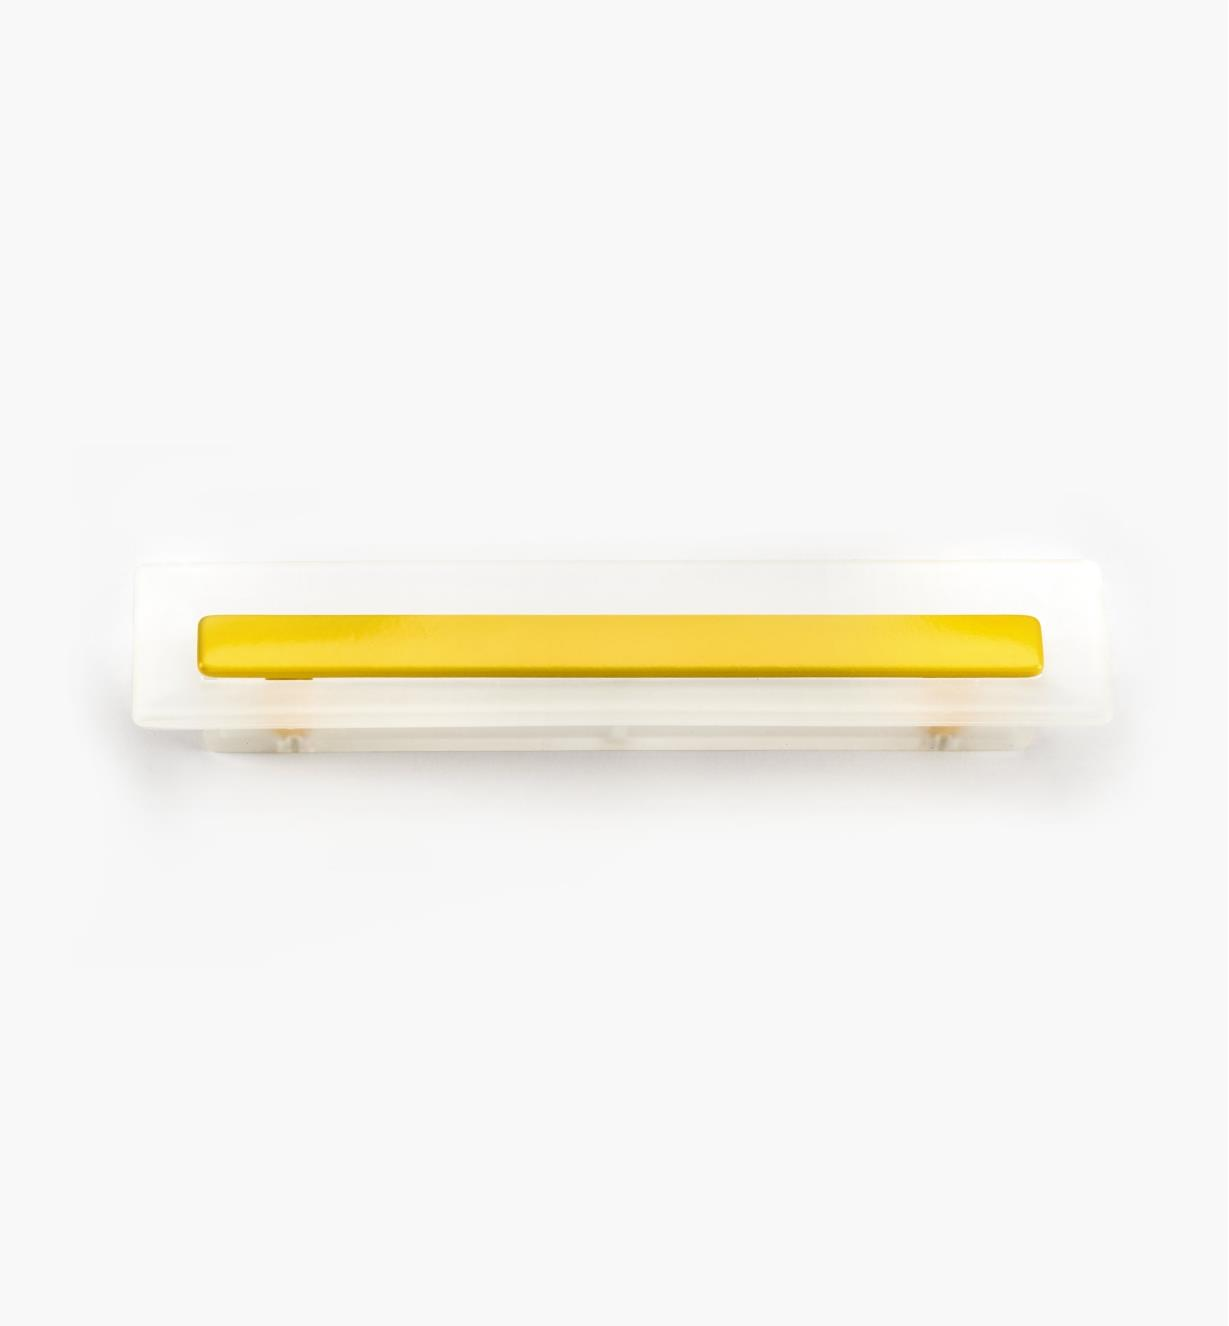 00W5443 - 96mm Bungee Handle, Yellow